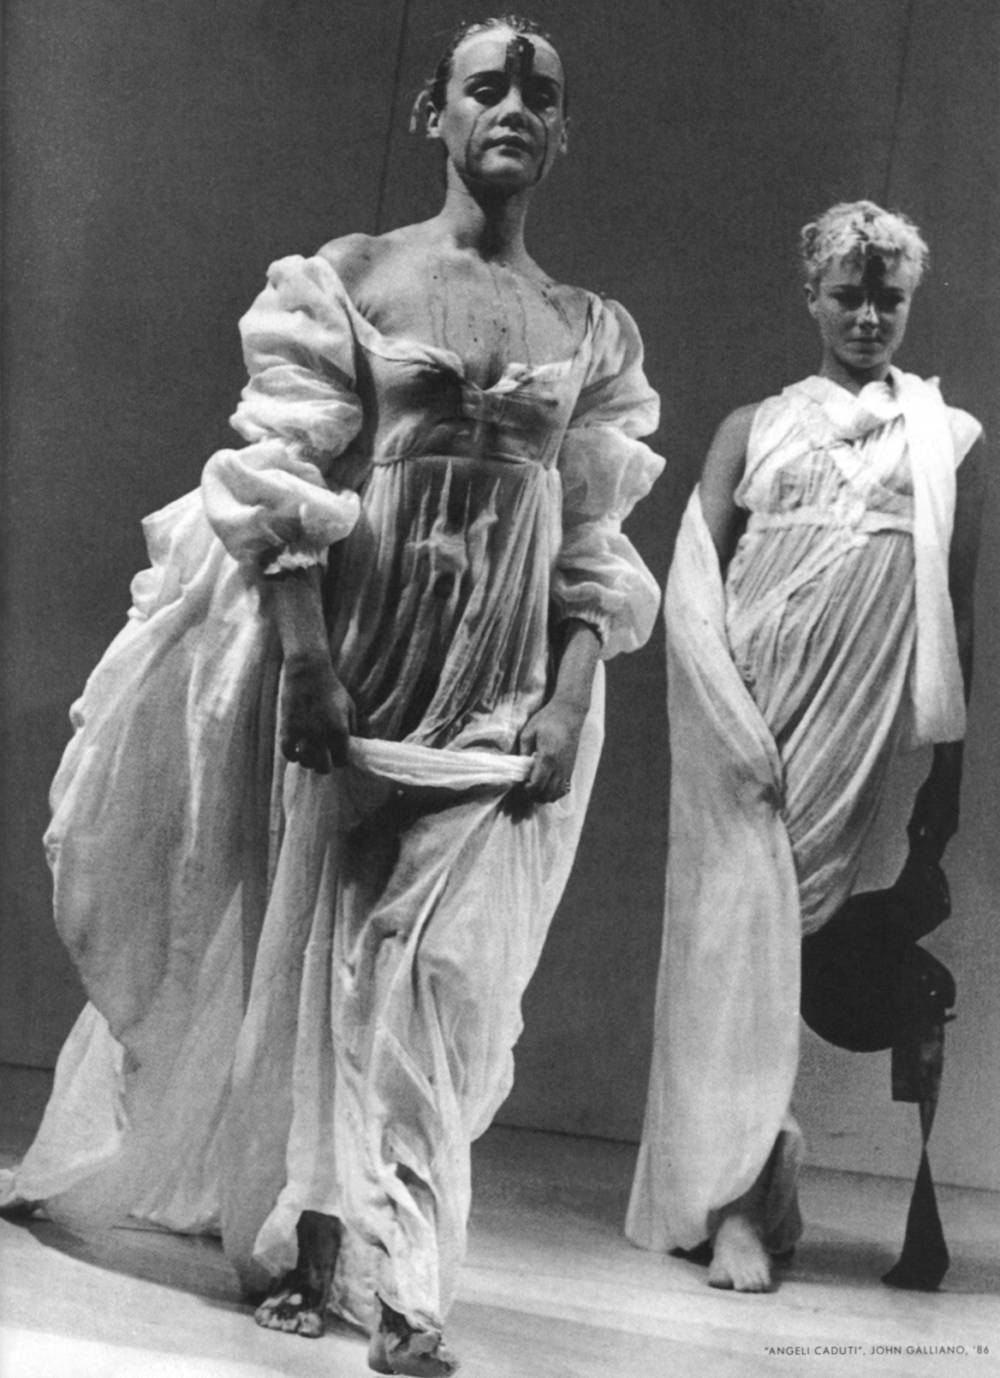 John Galliano, Spring/Summer 1986